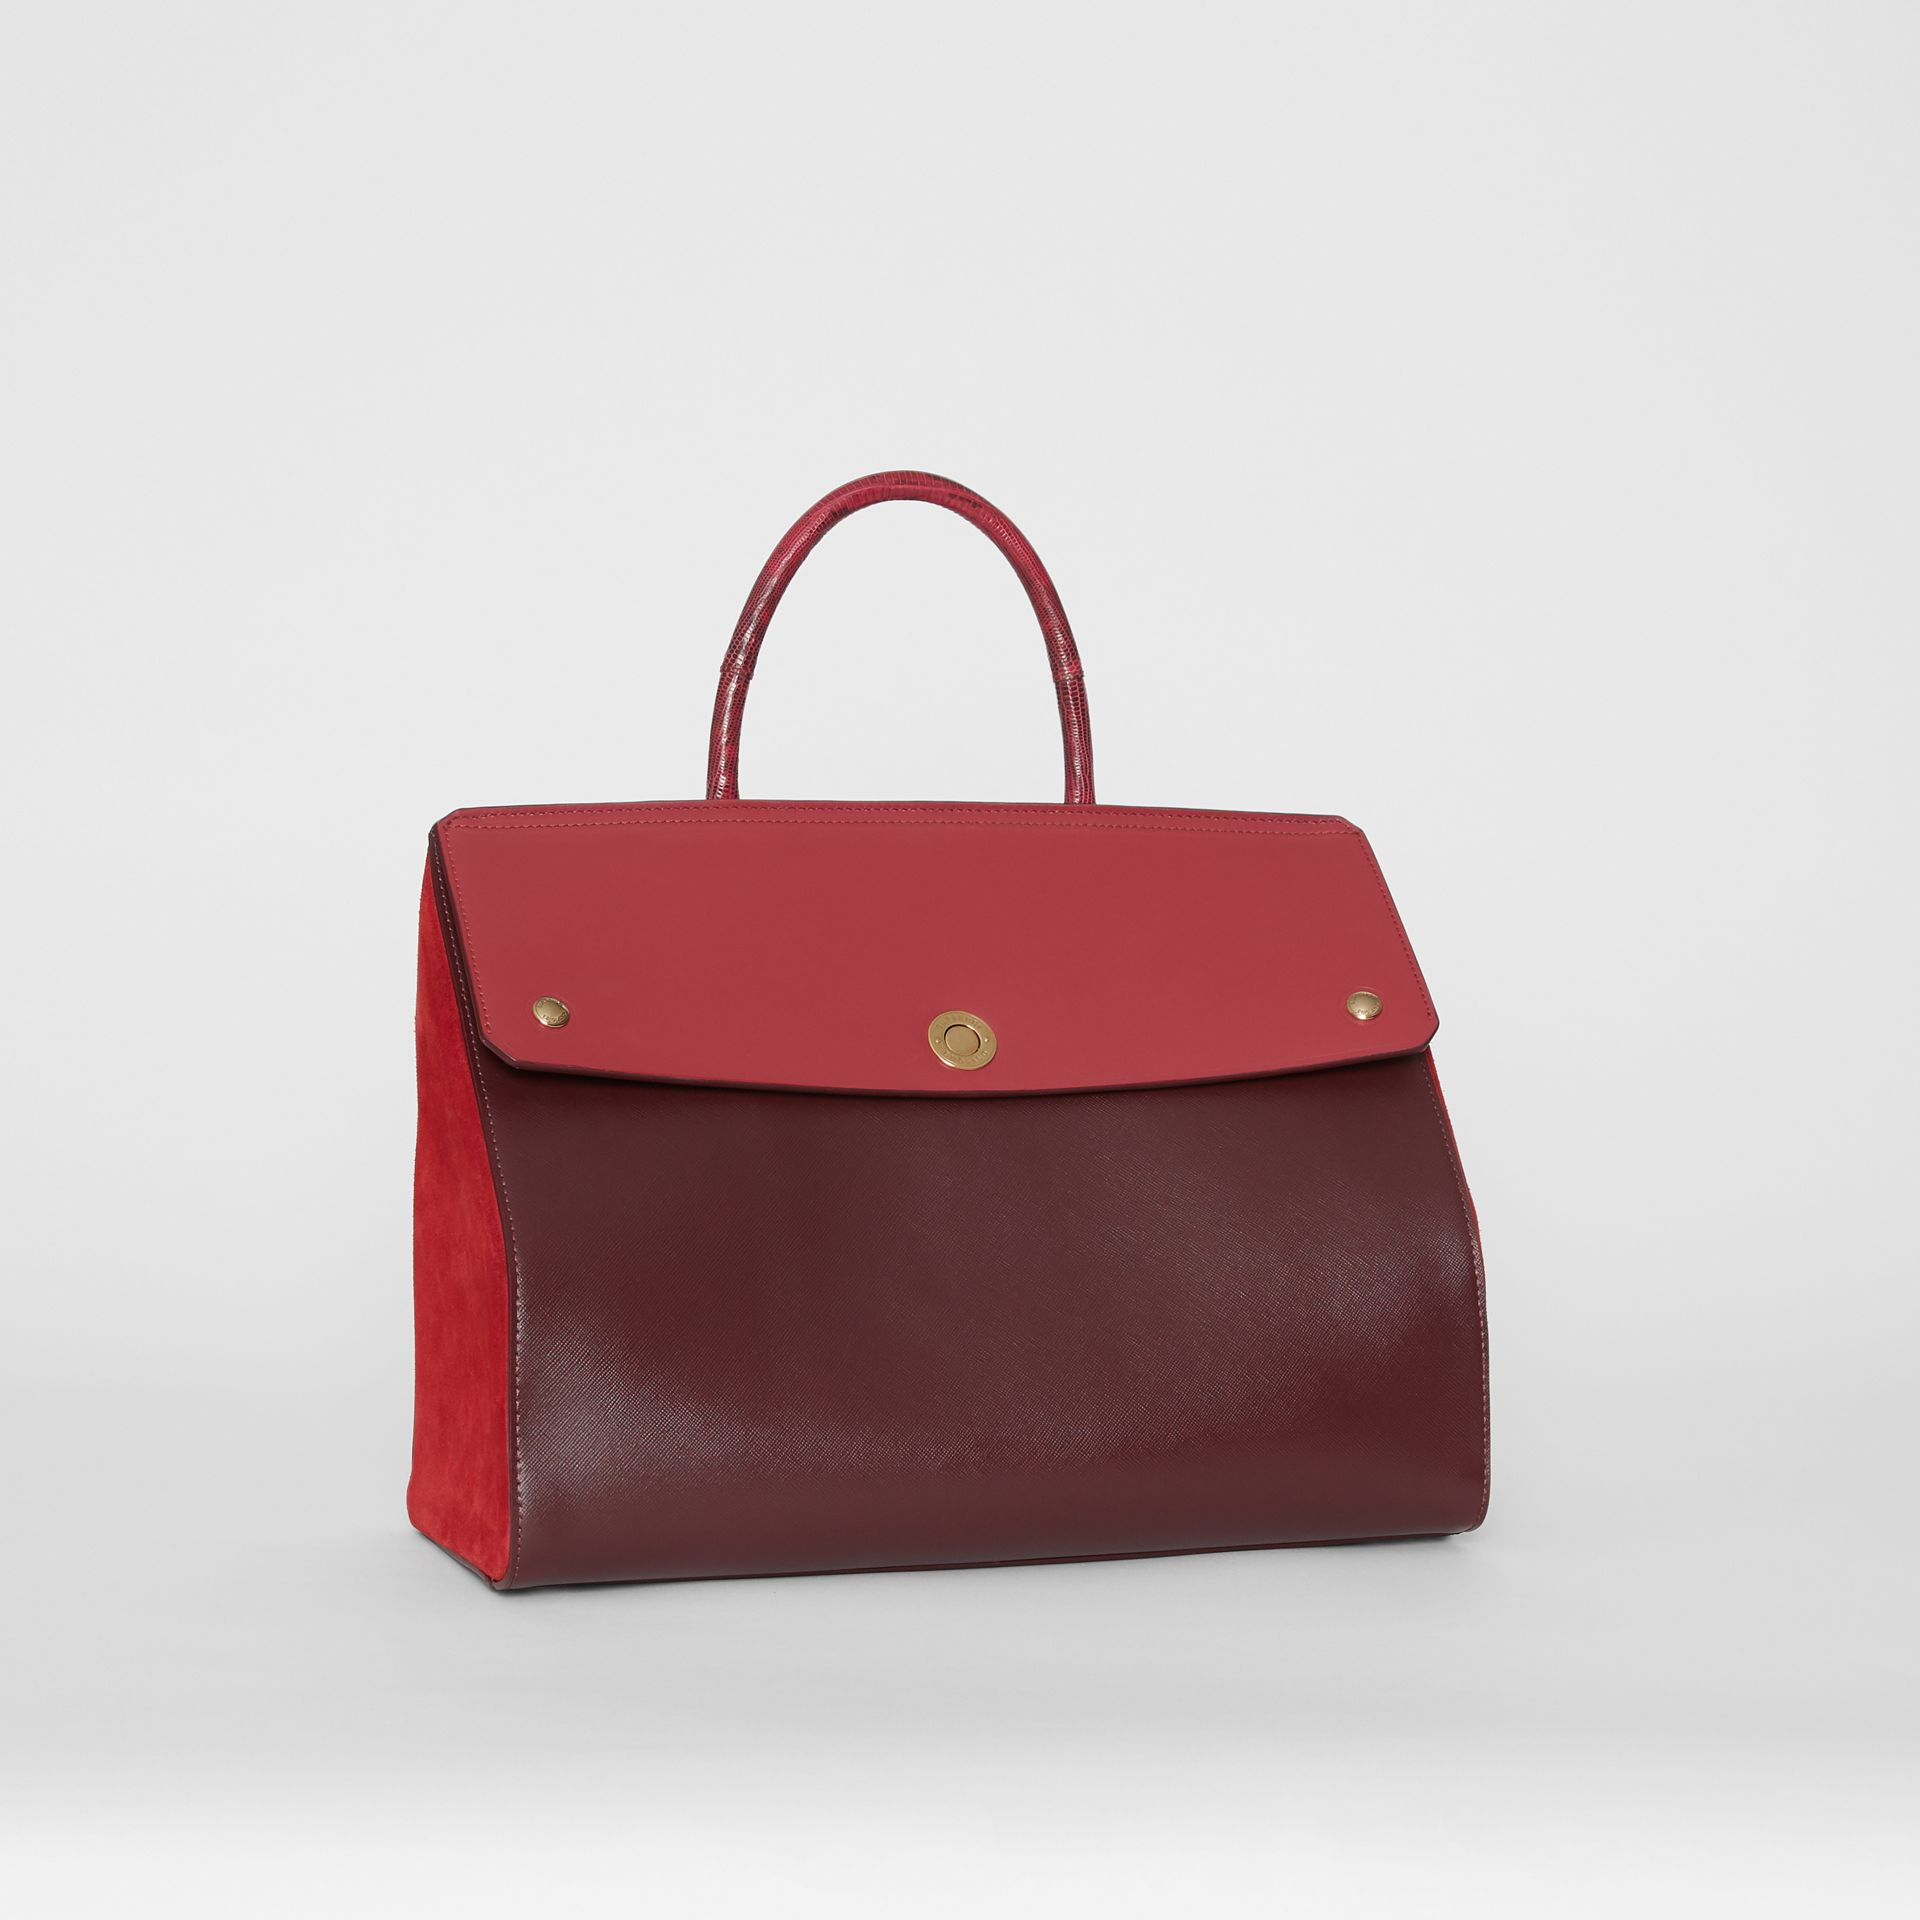 Medium Leather and Suede Elizabeth Bag in Crimson - Women | Burberry - gallery image 6